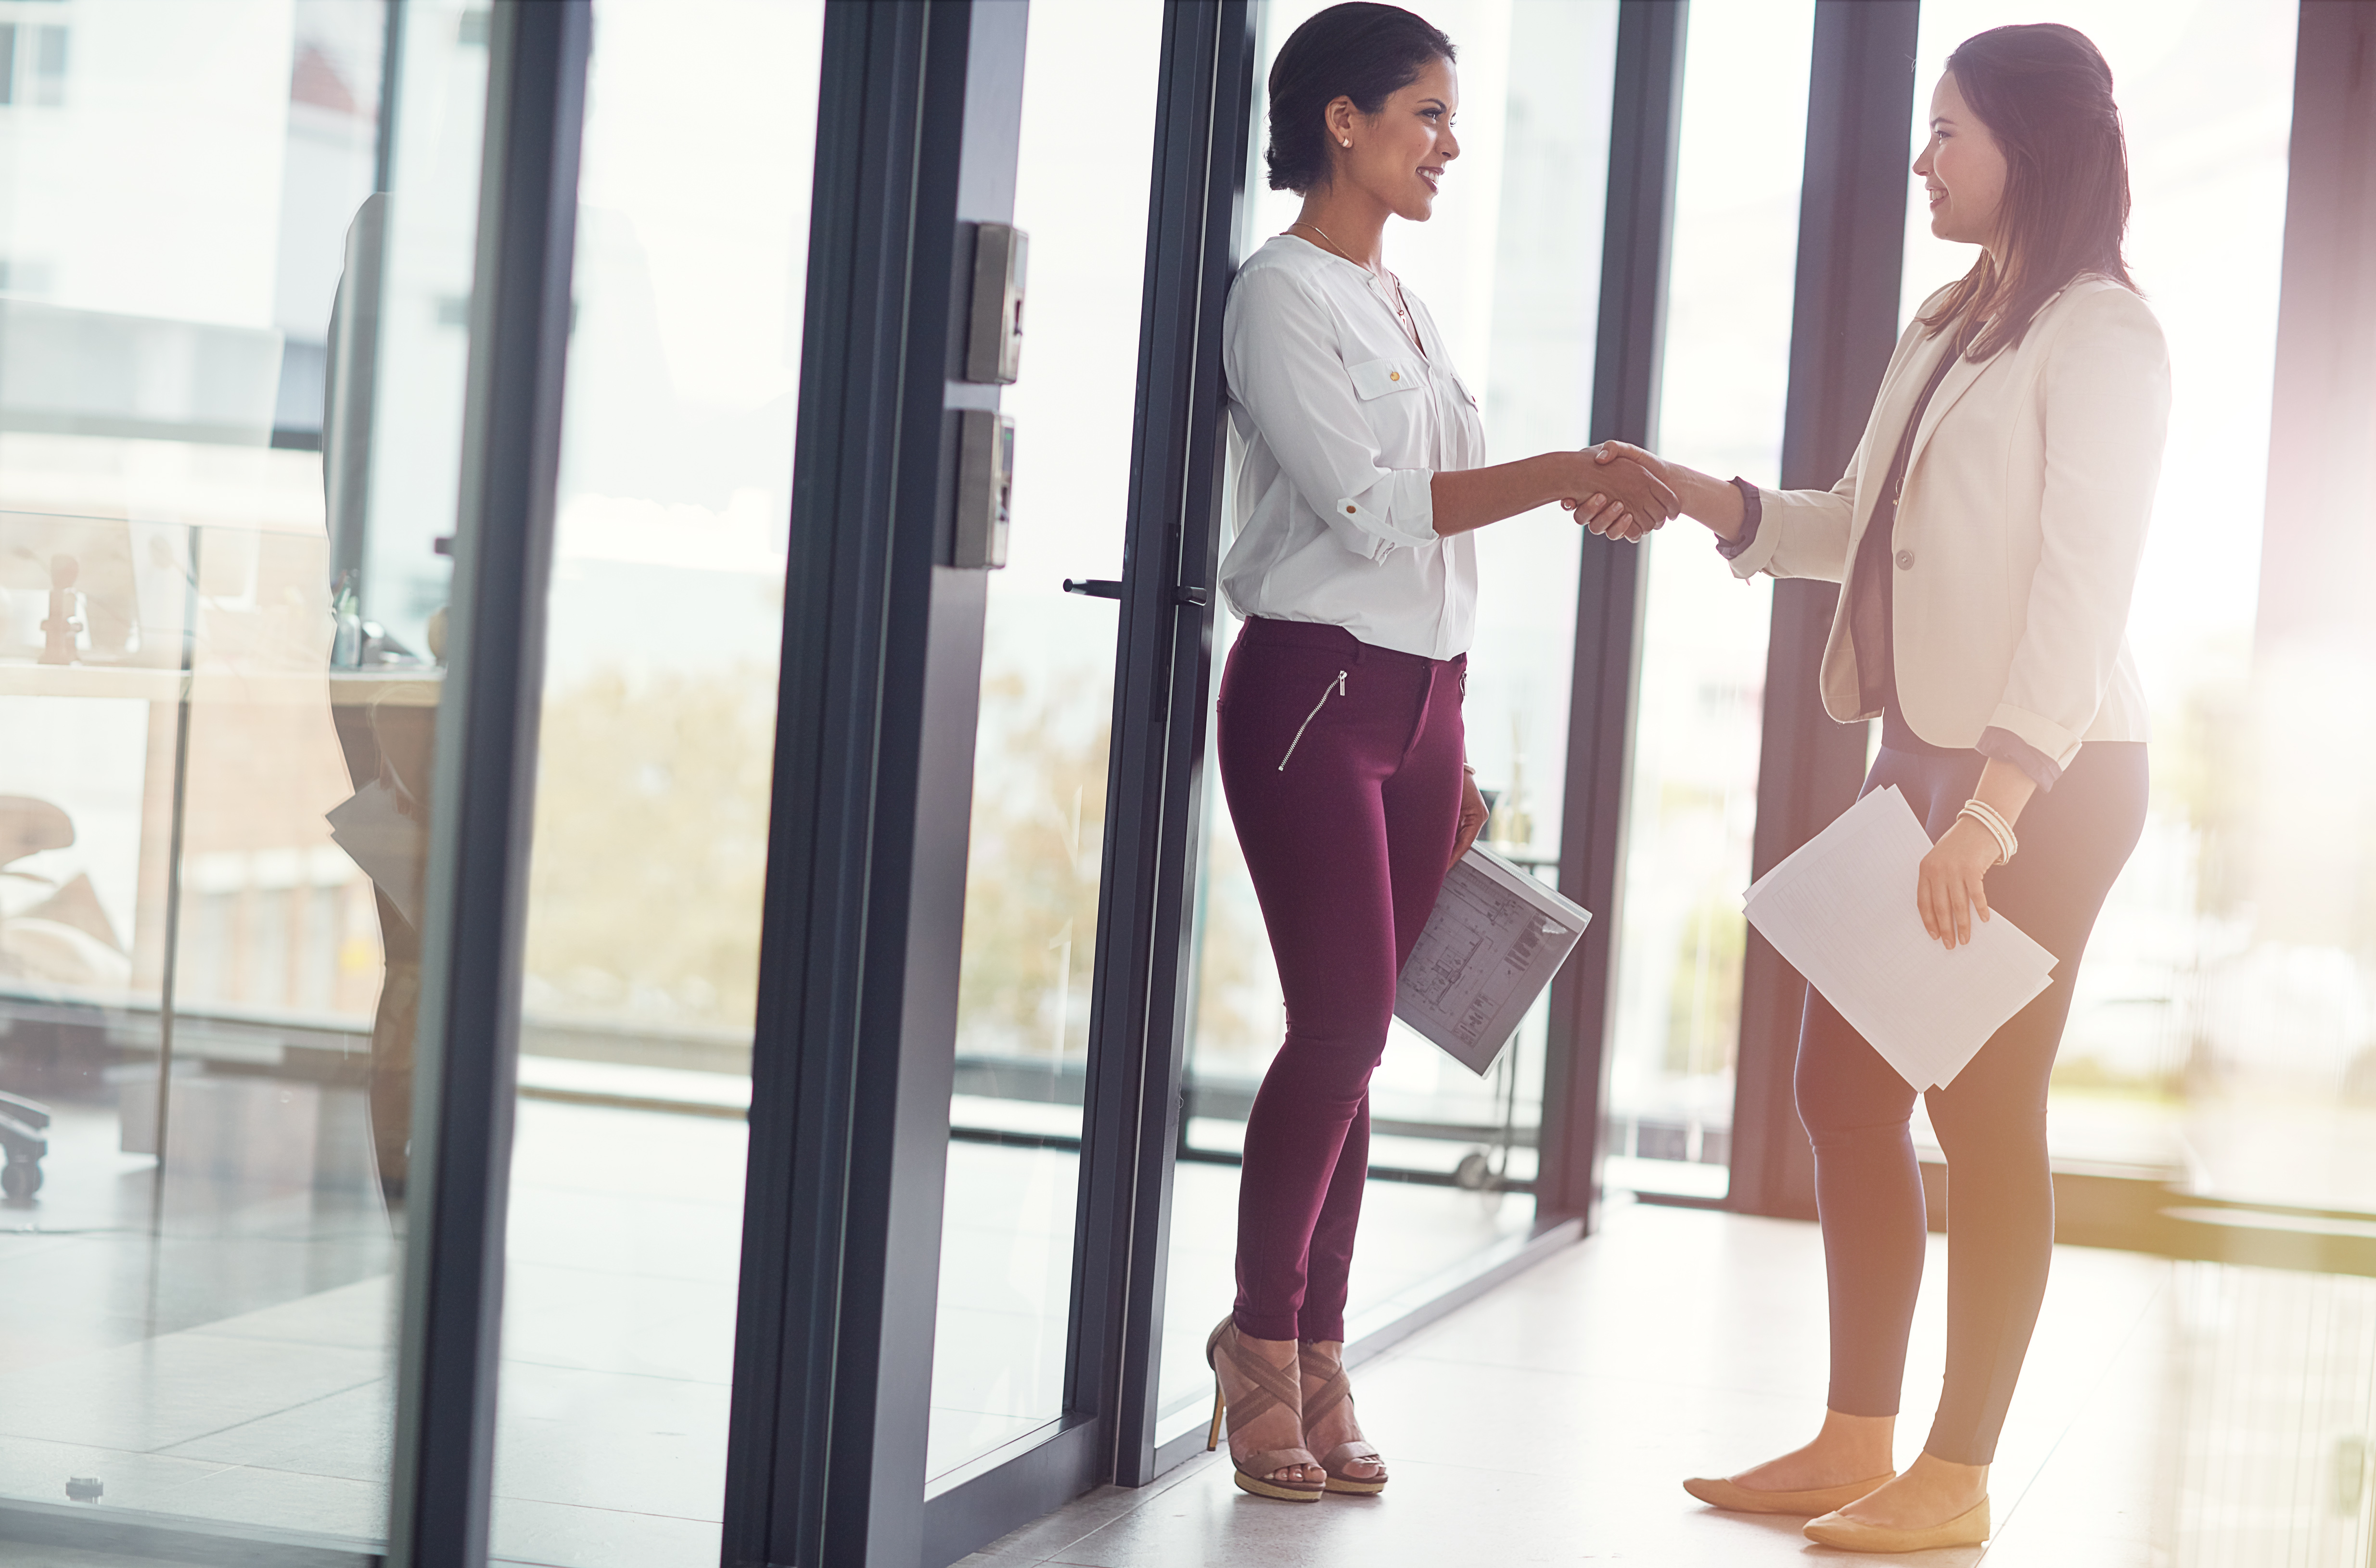 Shot of two businesswomen shaking hands in an office